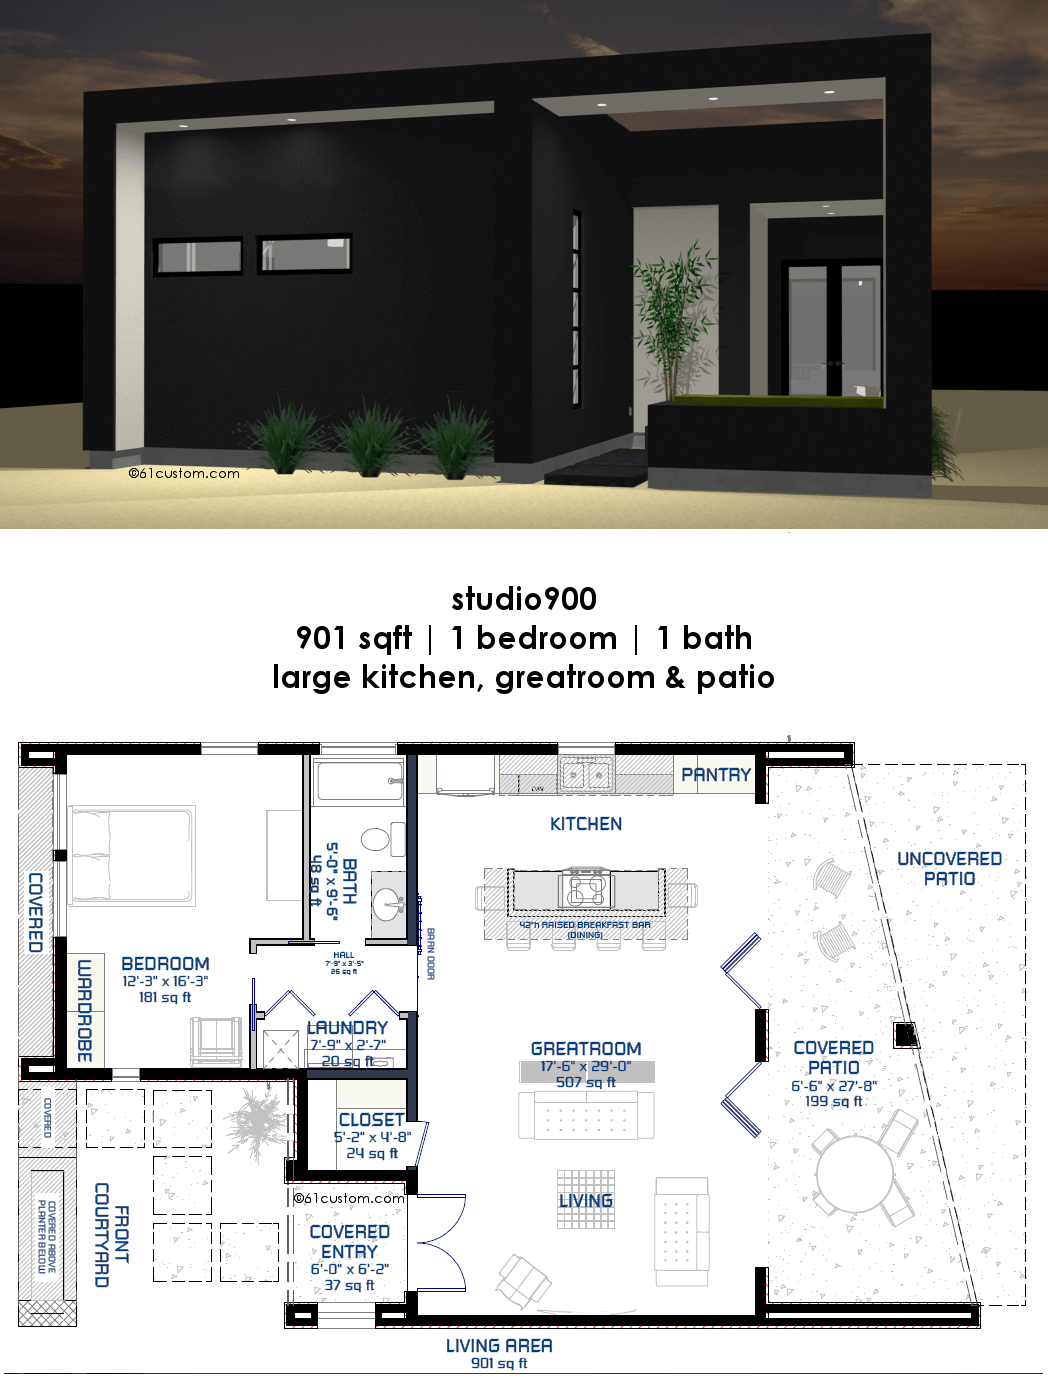 Small Home Plans: Studio900: Small Modern House Plan With Courtyard